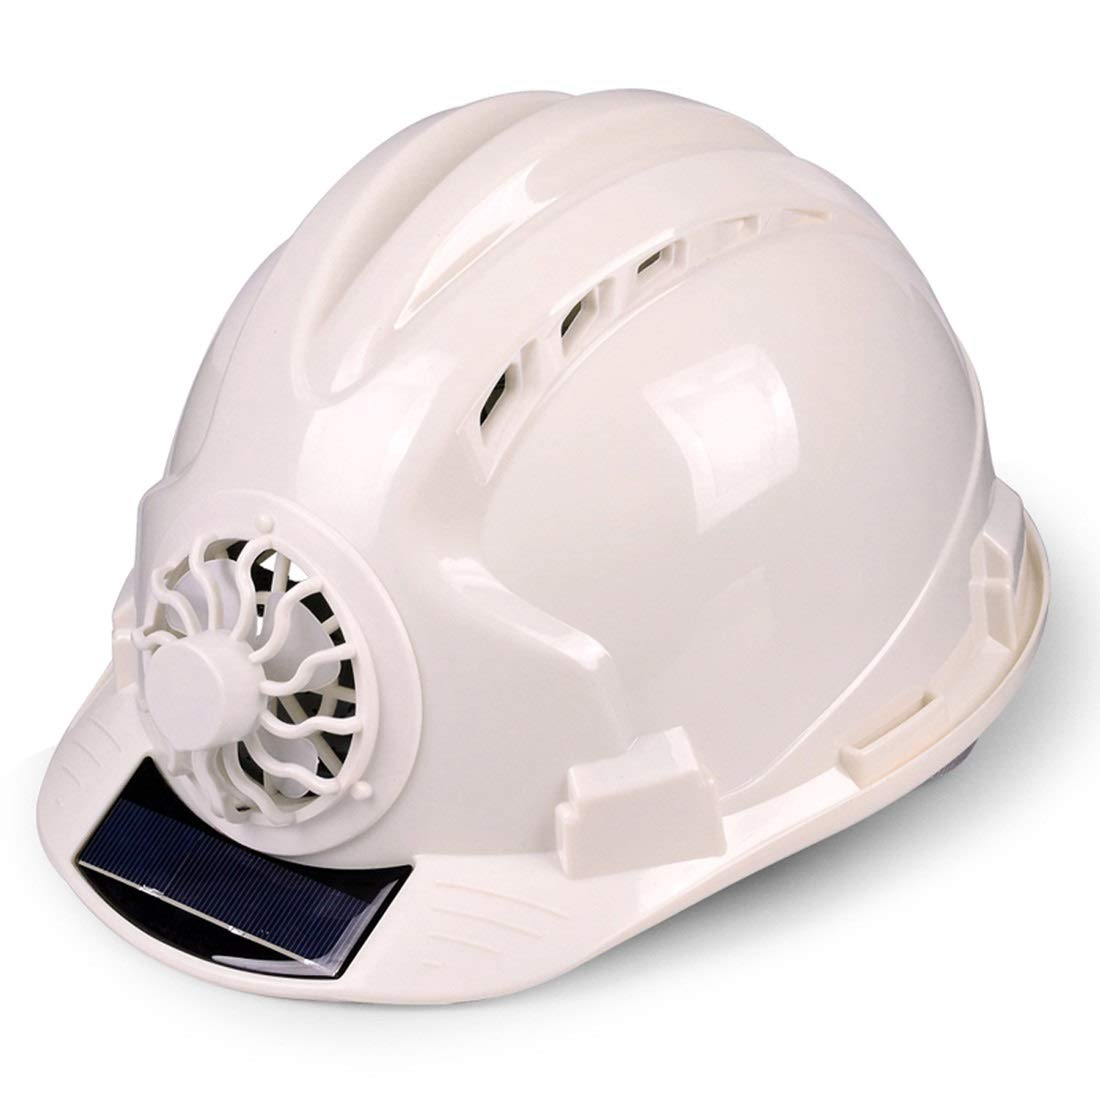 Lilade Adjustable Construction Helmet with 'Solar Fan' Vents-Meets ANSI Standards-Personal Protective Equipment, for Construction,Home Improvement and DIY Projects/PP Material ( Color : White )